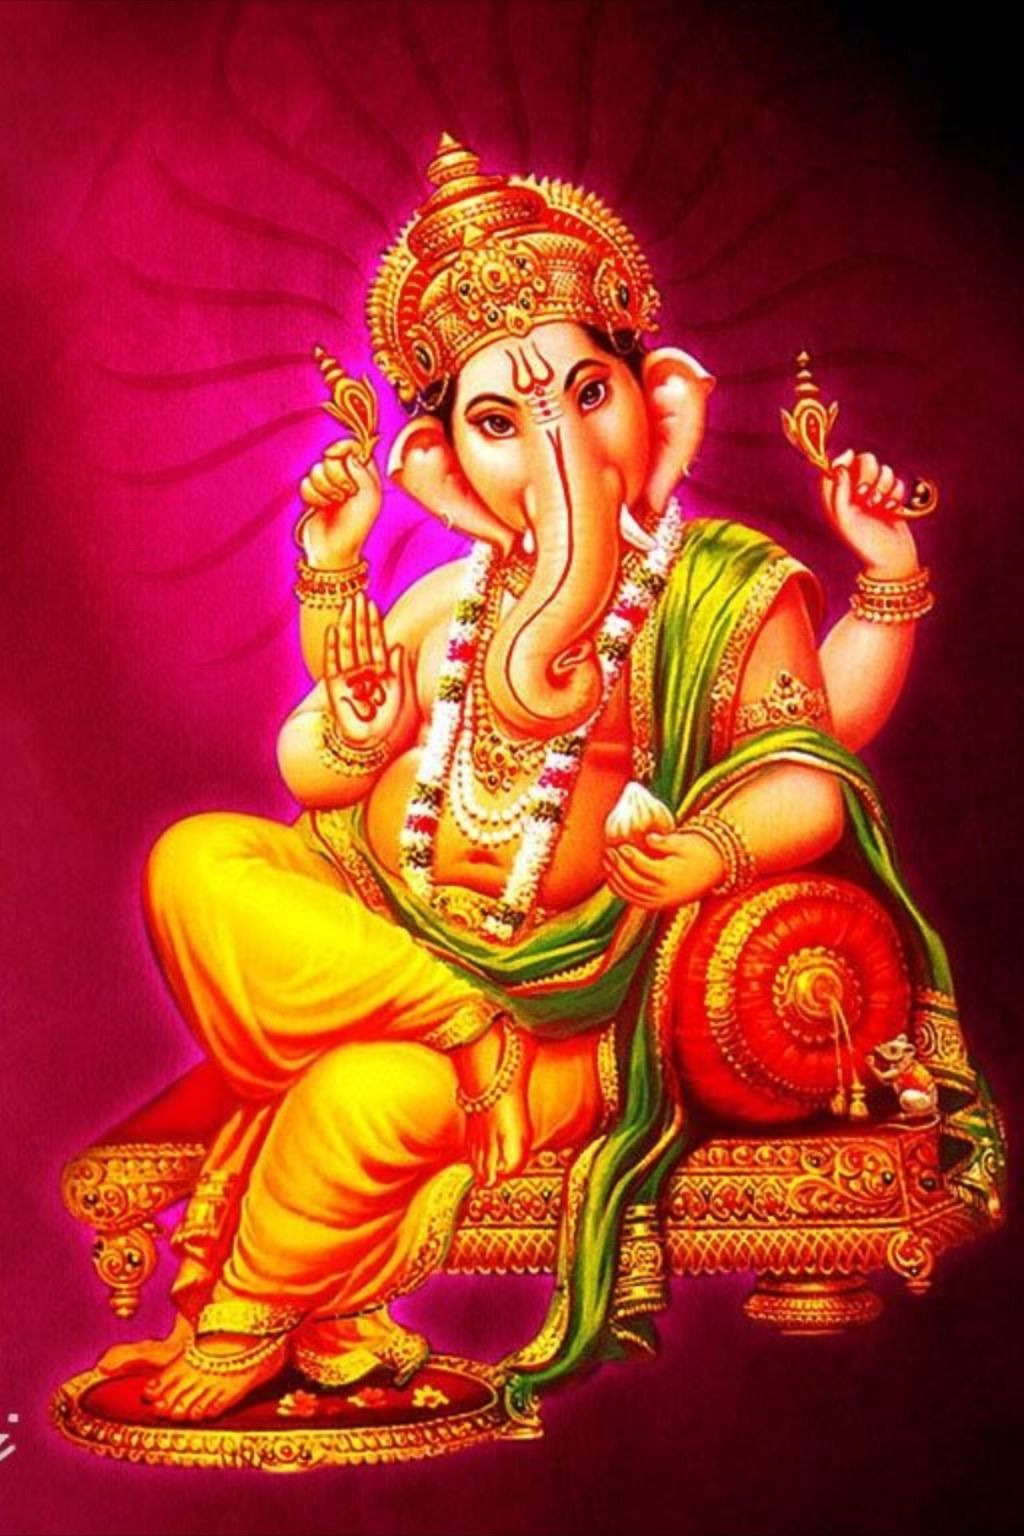 Ganesha Has Been Represented With The Head Of An Elephant Since The Early Stages Of His Appearance In Indian Art Ganesha Pictures Hindu Art Radha Krishna Art